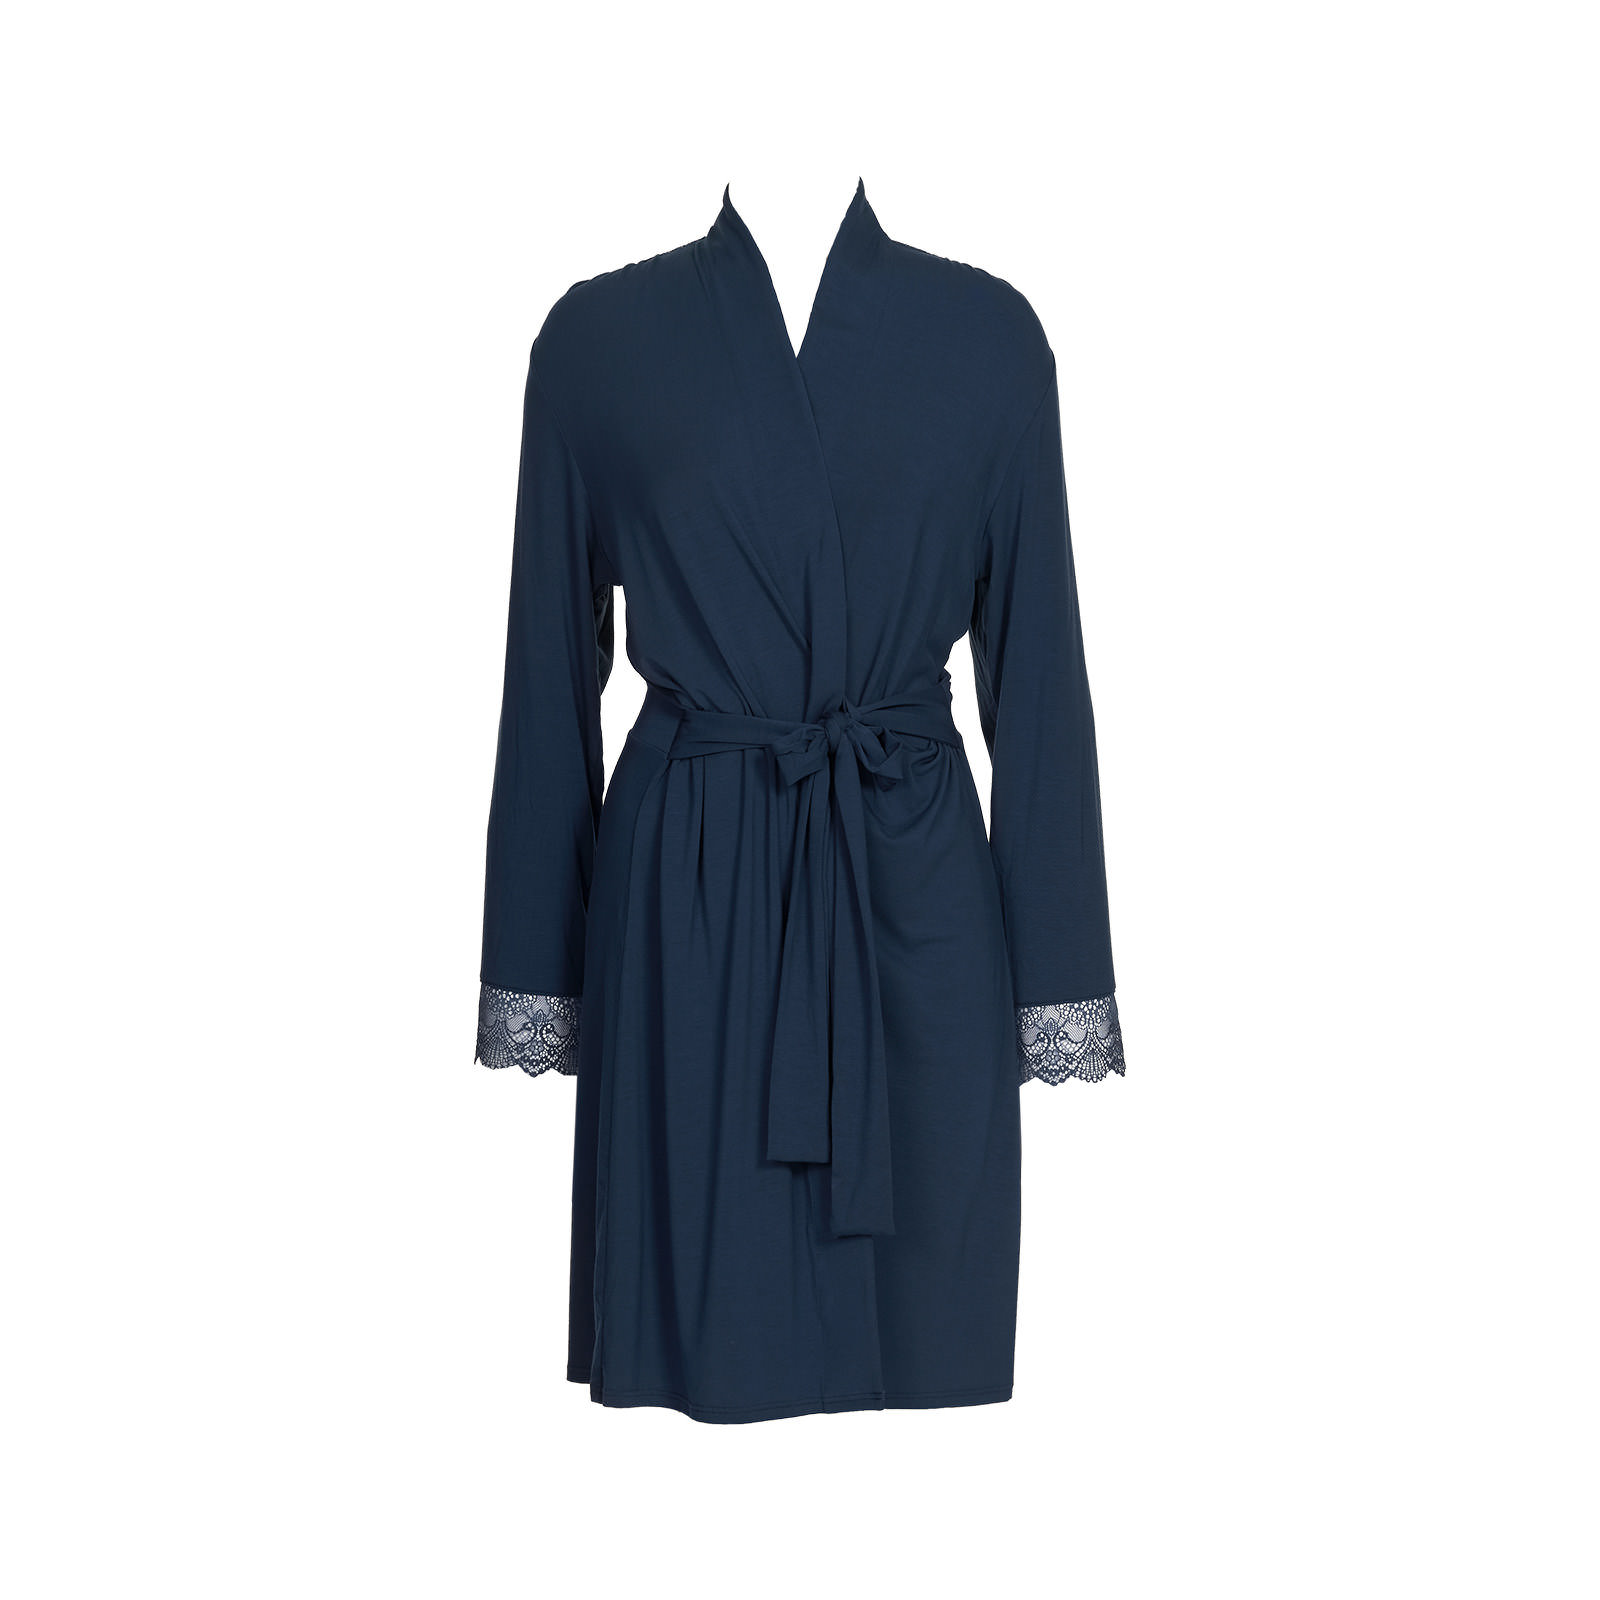 robe de chambre 171tiffany187 in bleu fonc233 loungewear